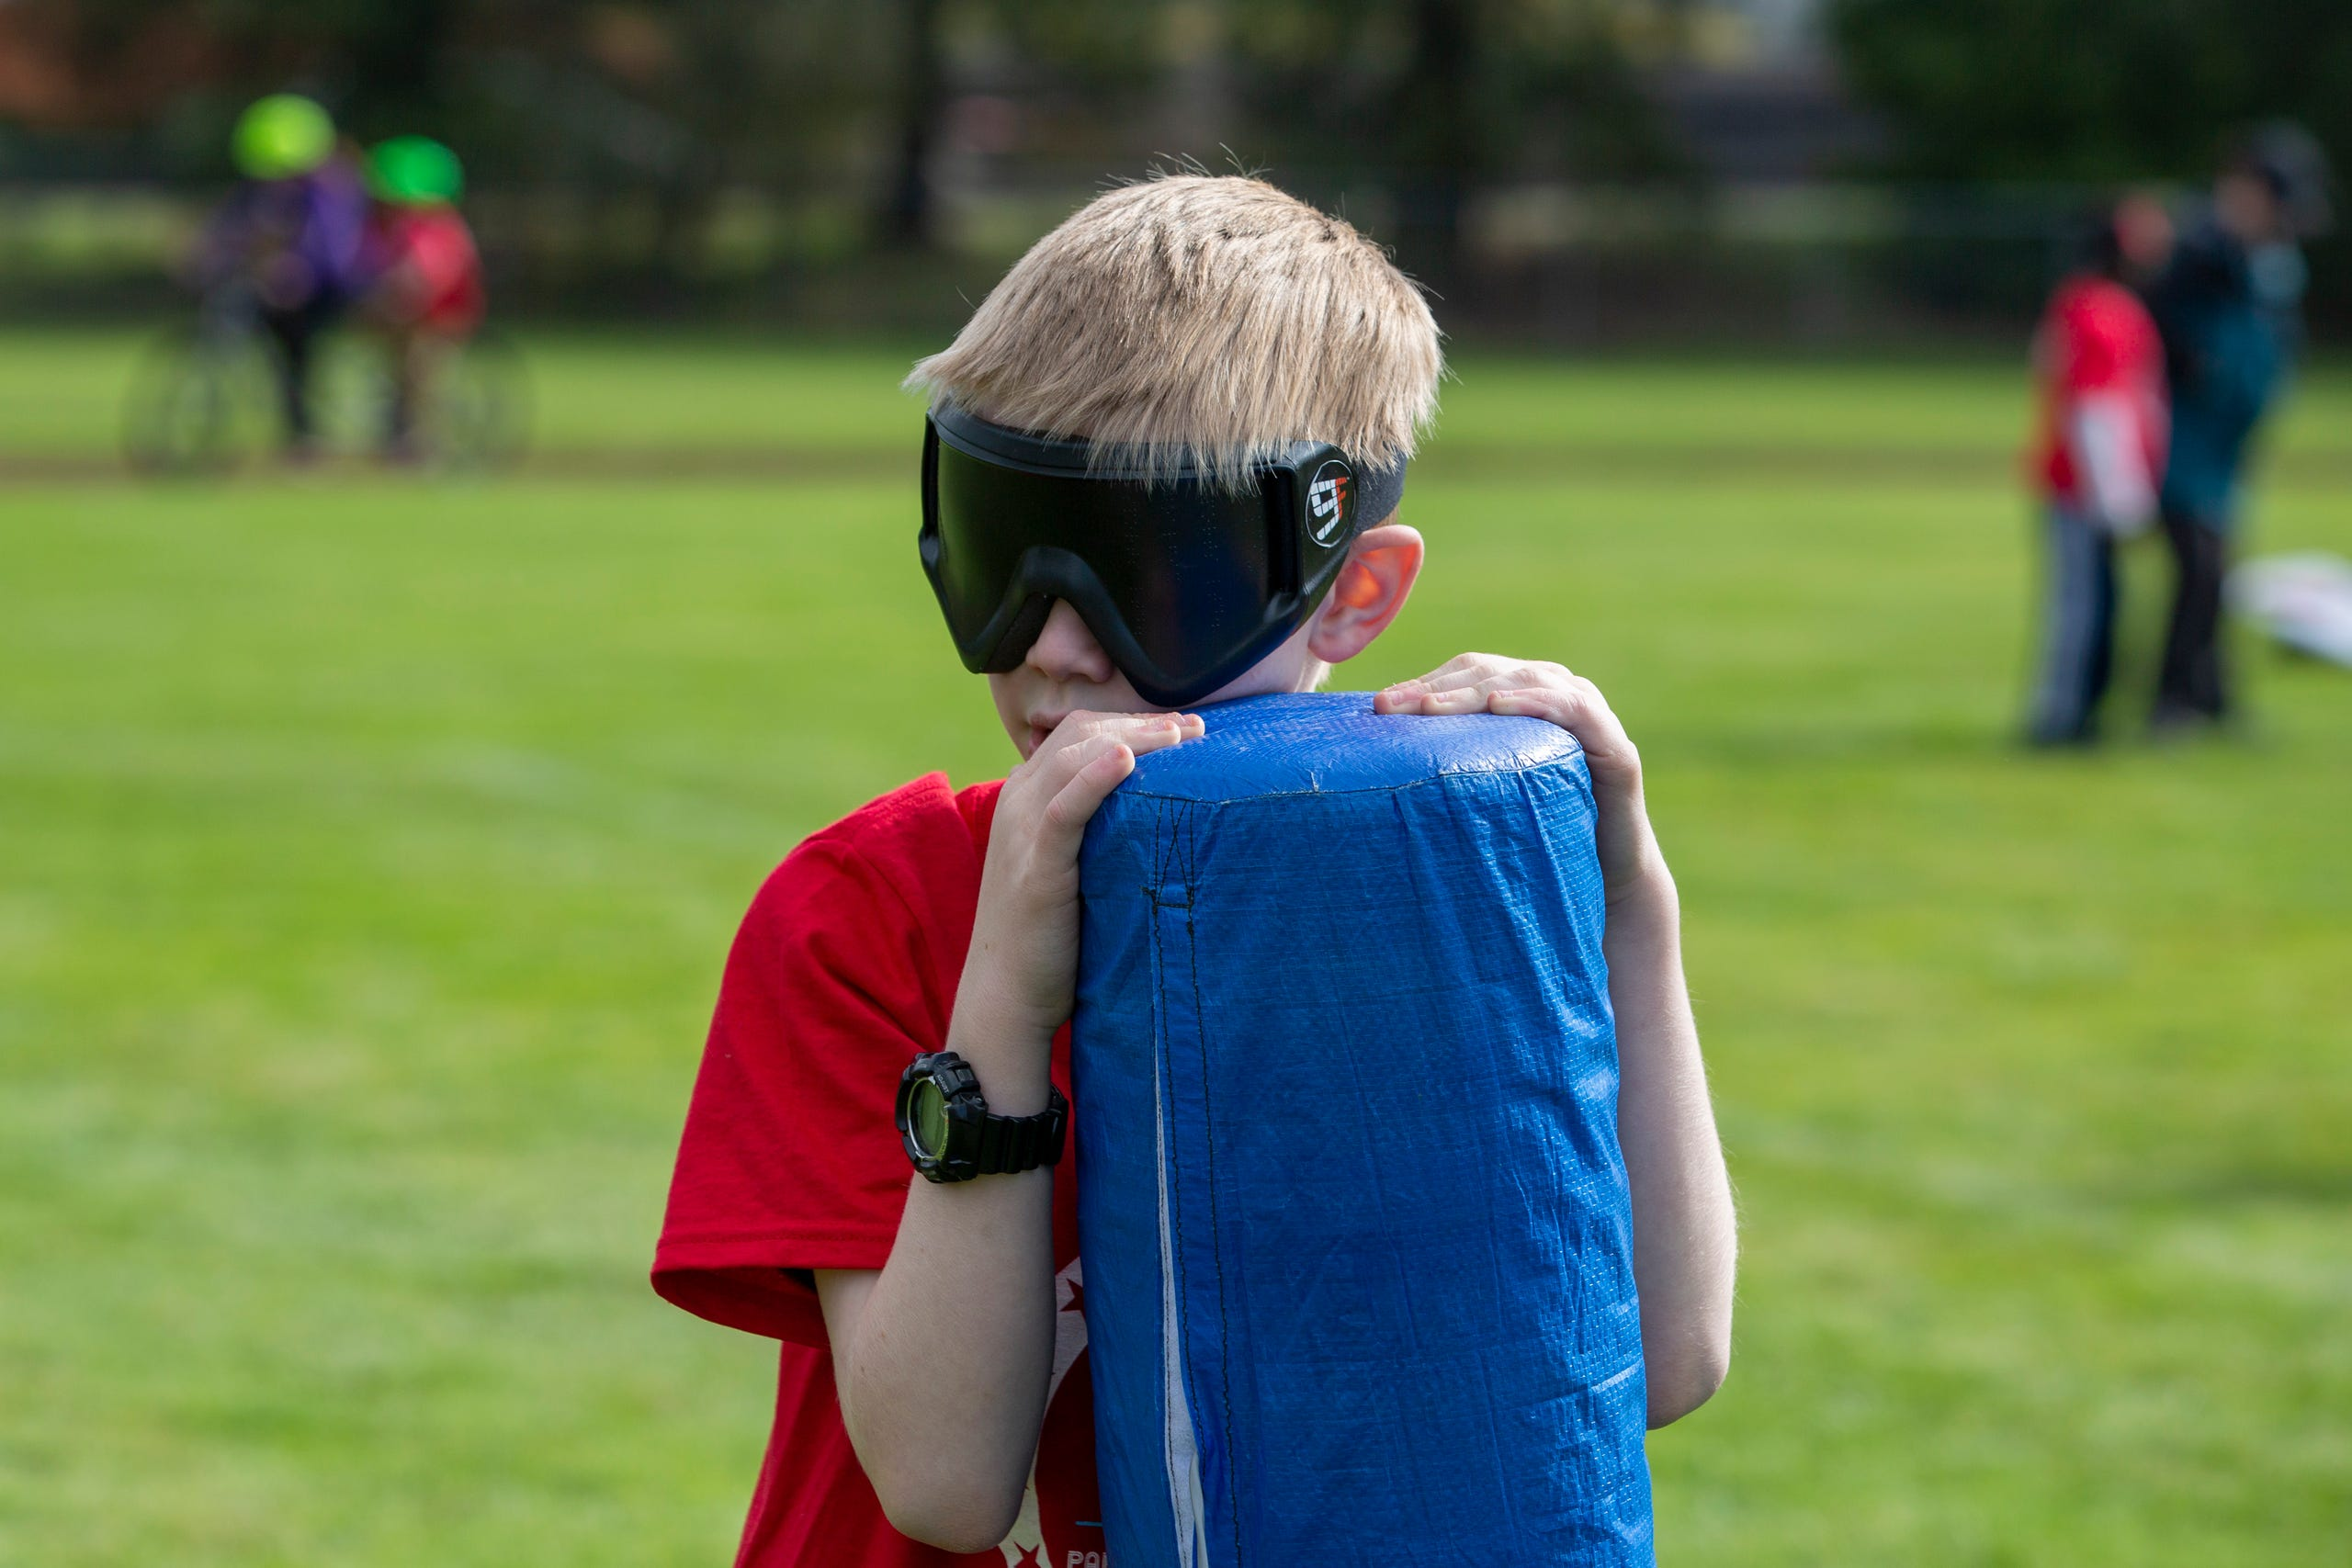 "Peter Gault, a 6th grader, holds onto the base during beep kickball at the Oregon School for the Deaf in Salem, Oct. 4, 2019. NWABA, the Northwest Association for Blind Athletes, hosted a ""Paralympic experience"" for students with visual impairments in the state. After the Oregon School for the Blind closed in 2009, many visually impaired students and their families lost access to state-funded resources, like sports programs. The BVIS (Blind Visually Impaired Student) Fund gives programs like NWABA funds to enhance the lives of low vision/blind children across the state."